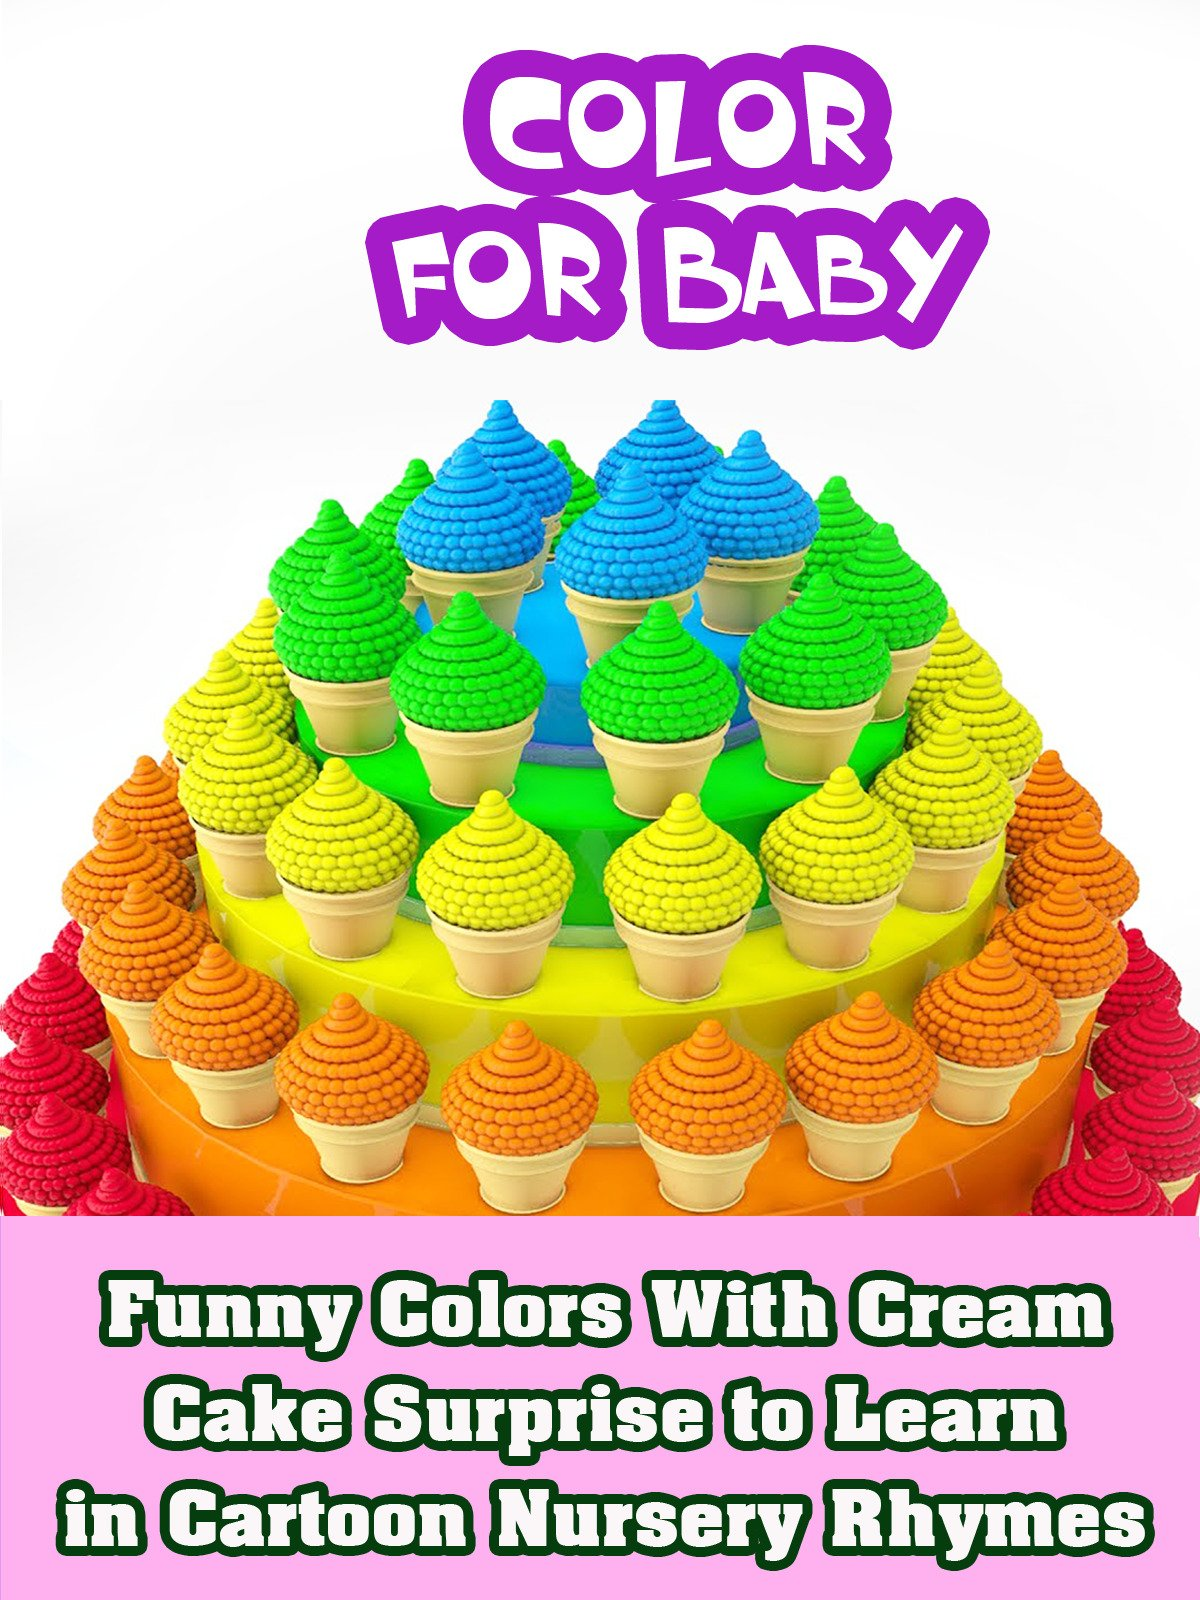 Funny Colors With Cream Cake Surprise to Learn in Cartoon Nursery Rhymes